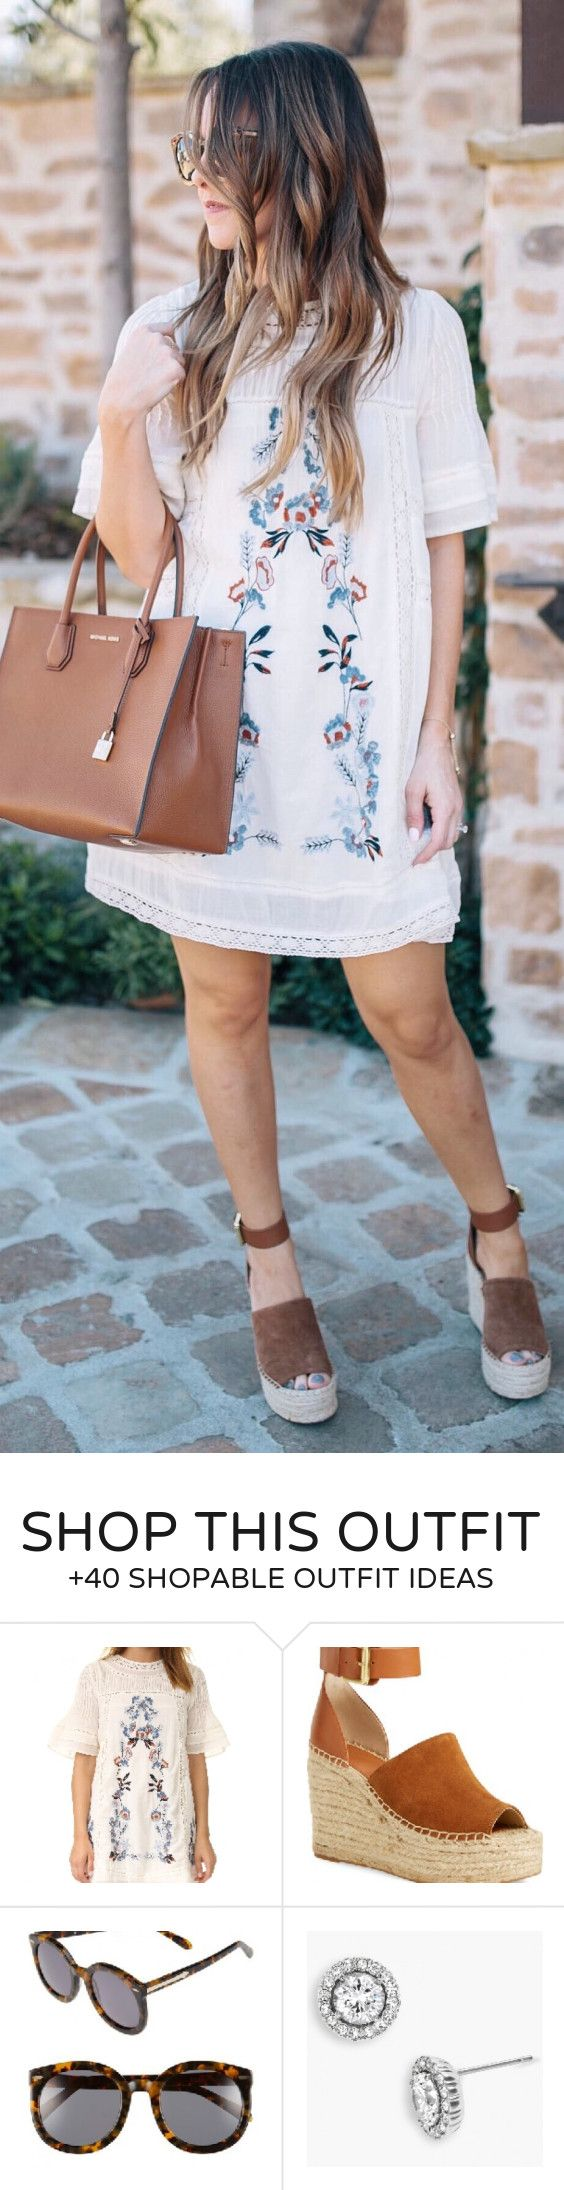 #summer #outfits  White Printed Dress + Brown Leather Tote Bag + Brown Wedge